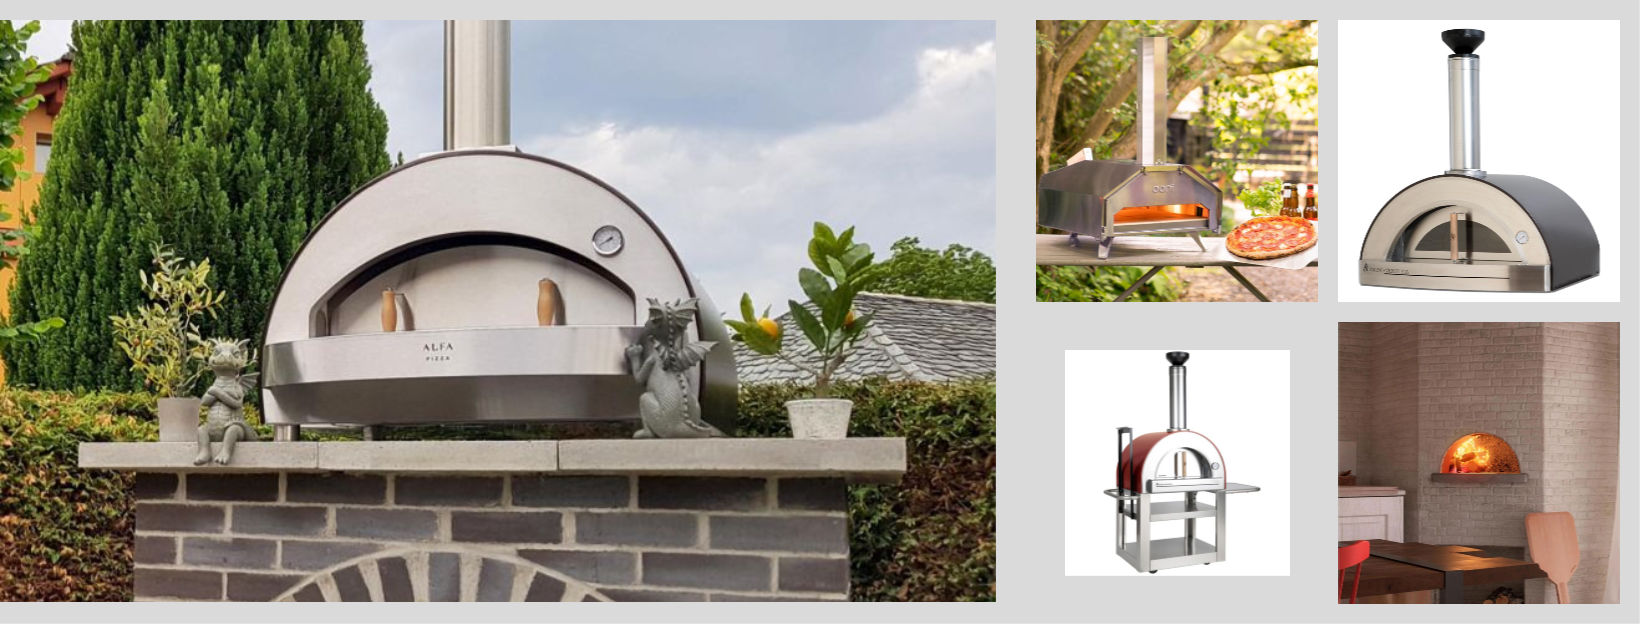 Best Wood Fired Pizza Oven Reviews And Tips